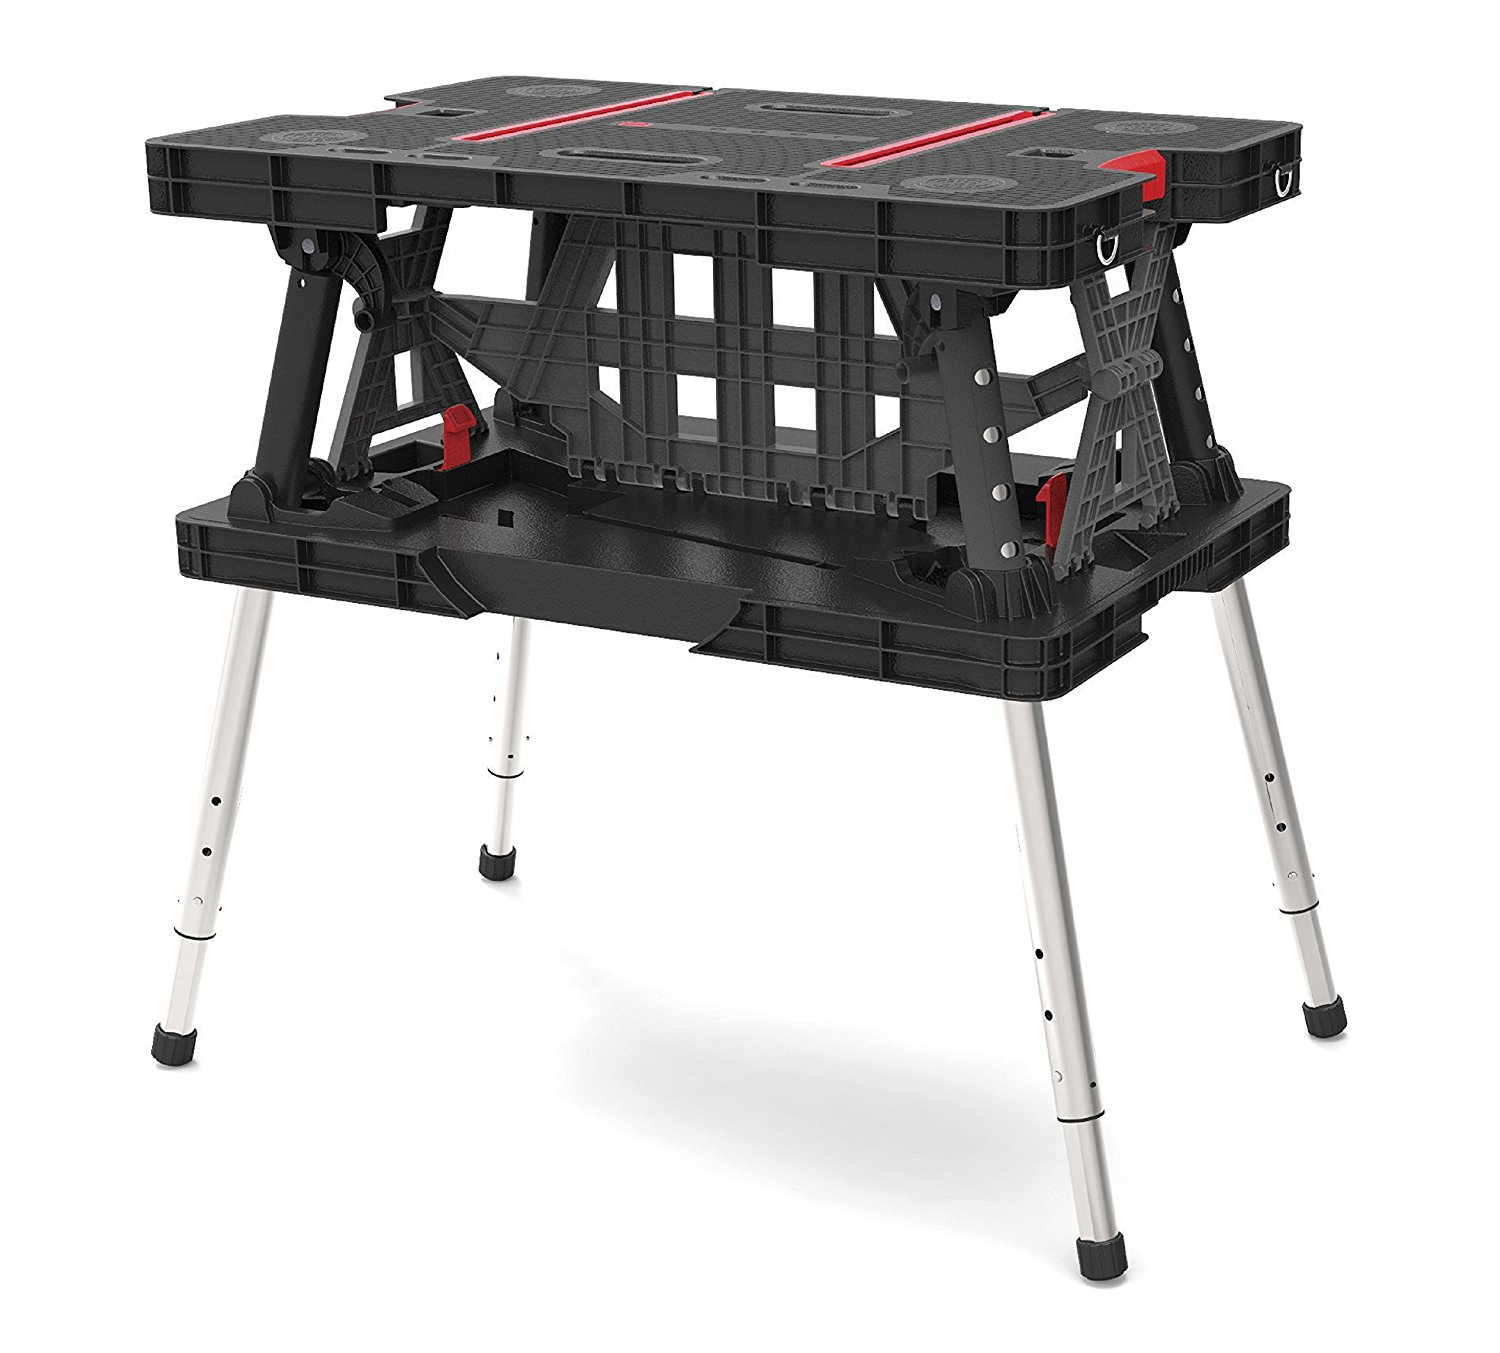 Brilliant Best Portable Workbench Reviews And Buying Guide 2019 Uwap Interior Chair Design Uwaporg